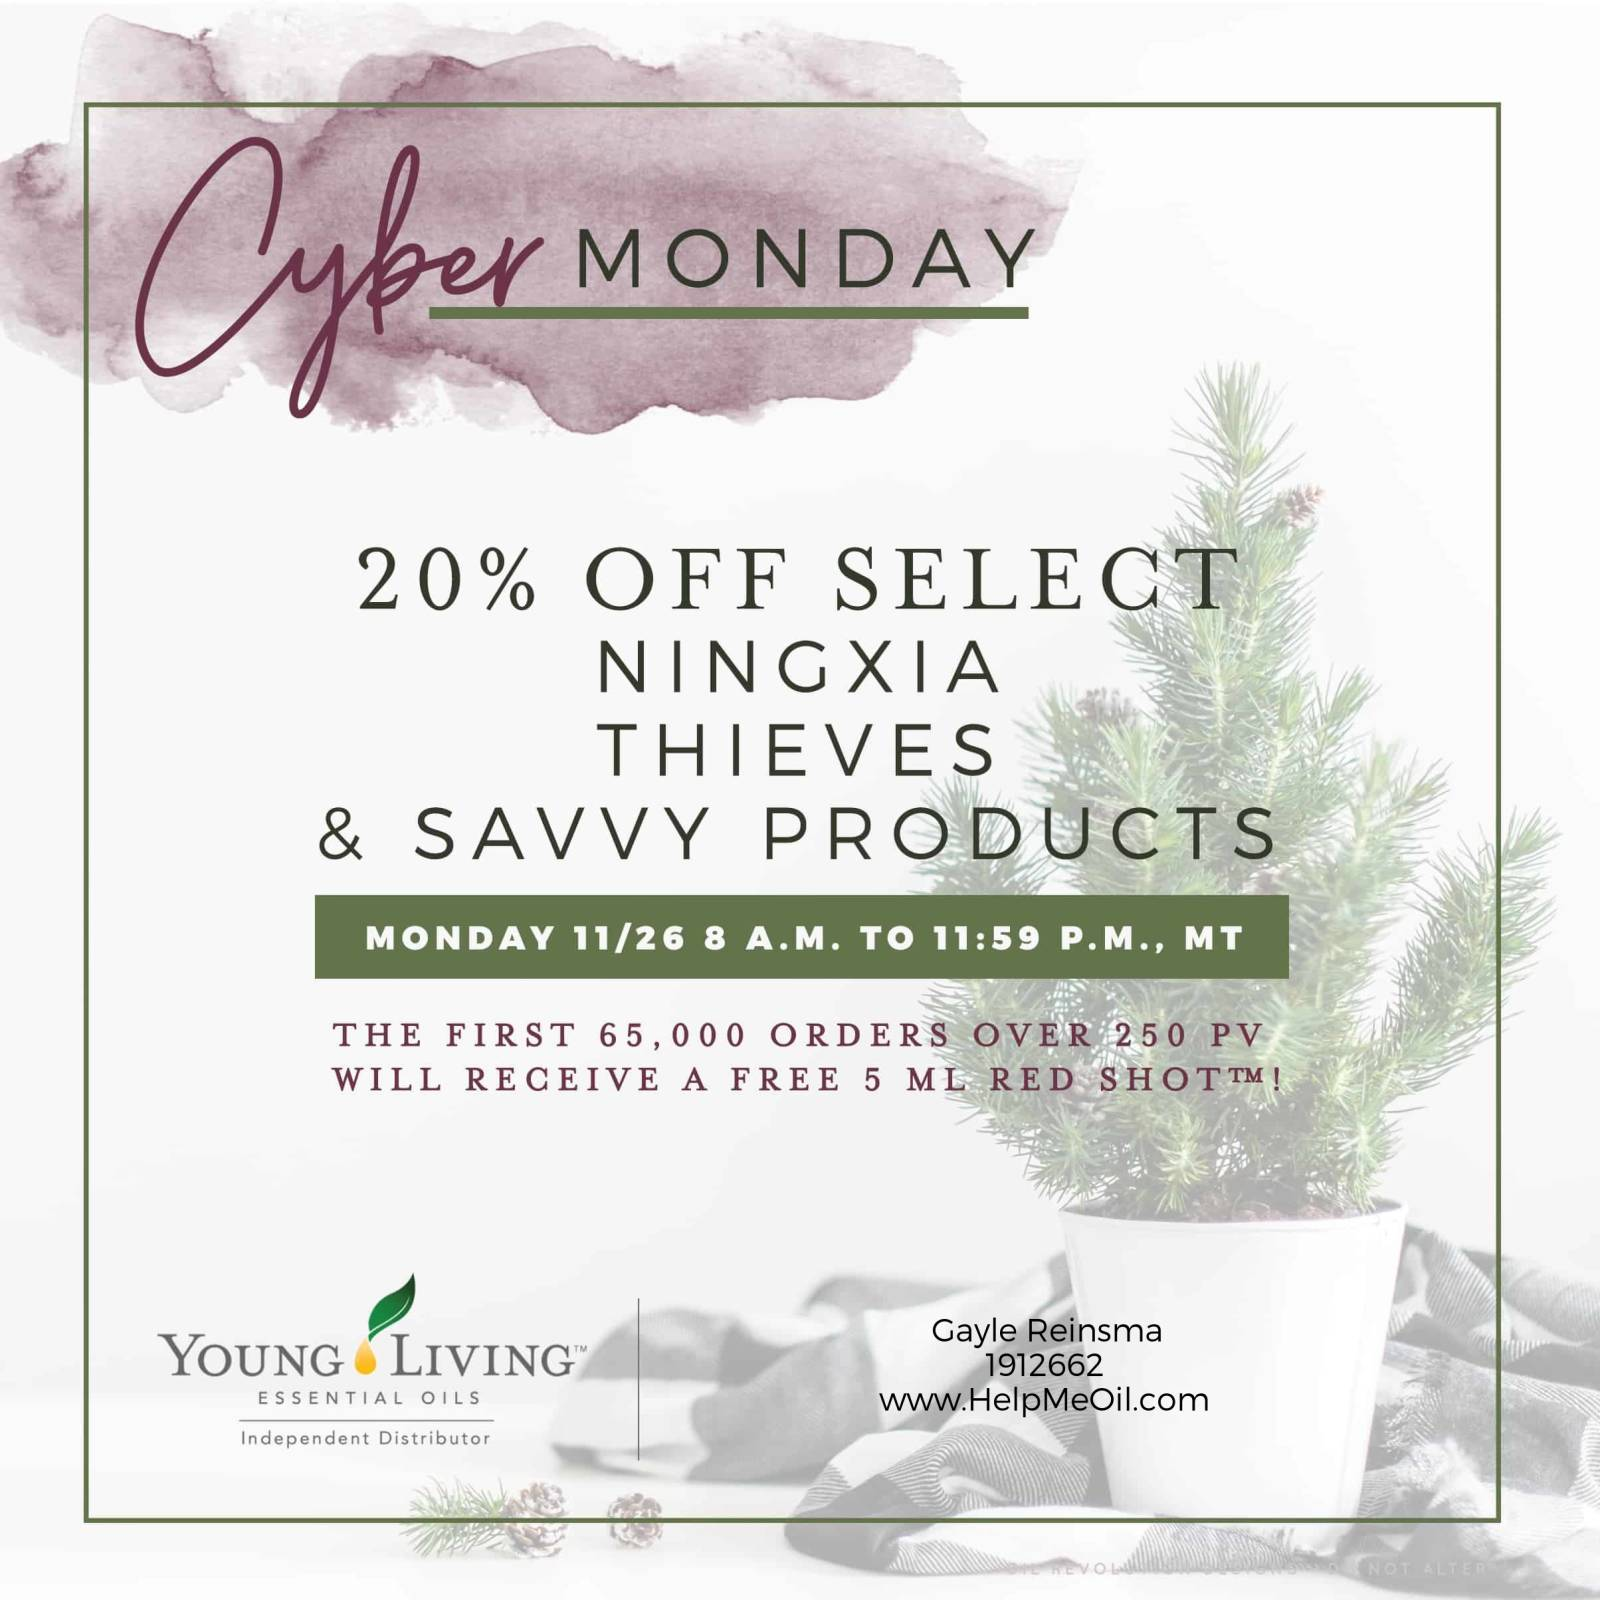 Young Living Cyber Monday Deals!